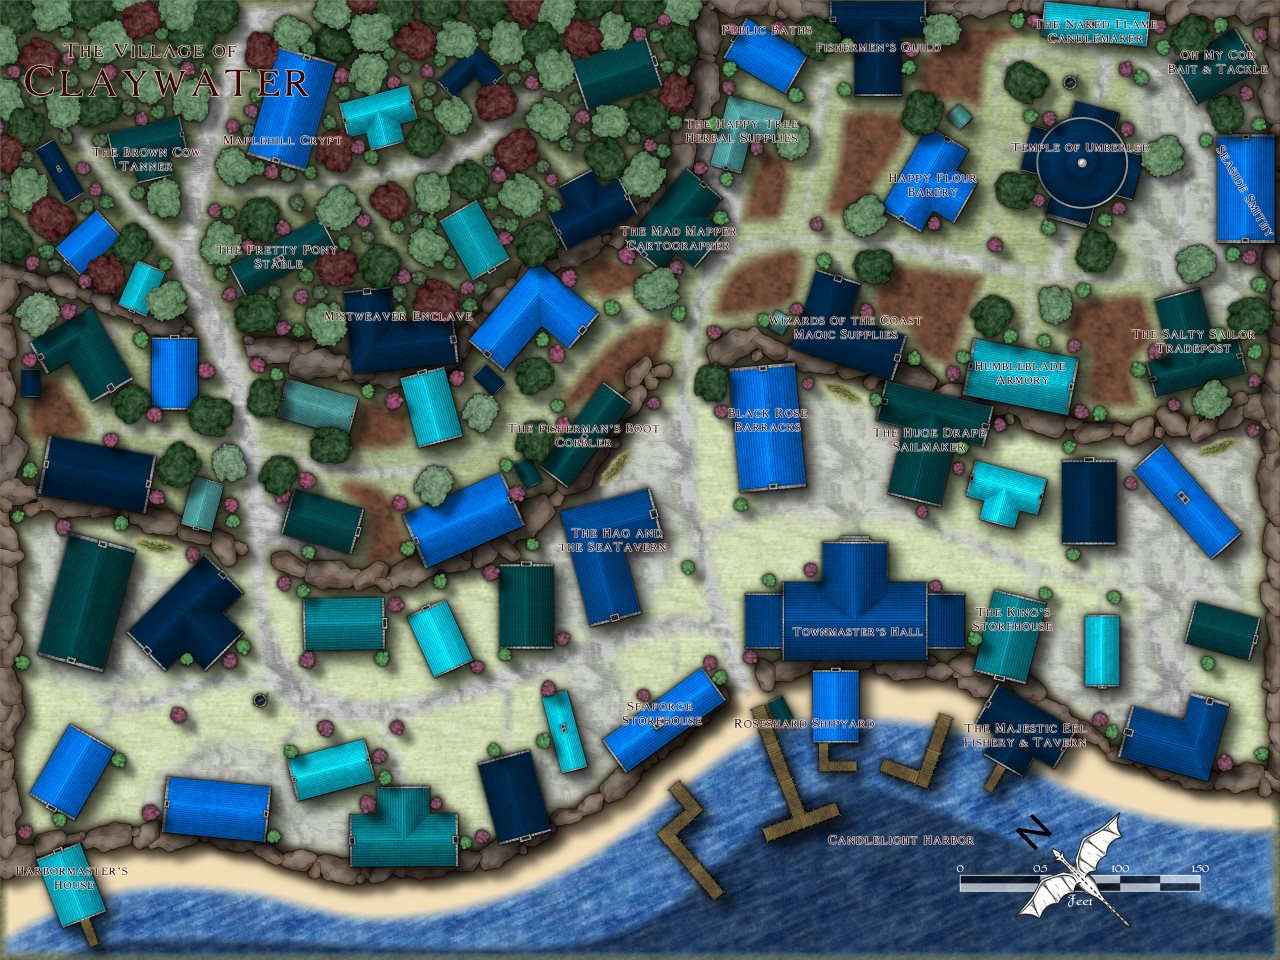 Nibirum Map: claywater by Louise (pixelkitteh)